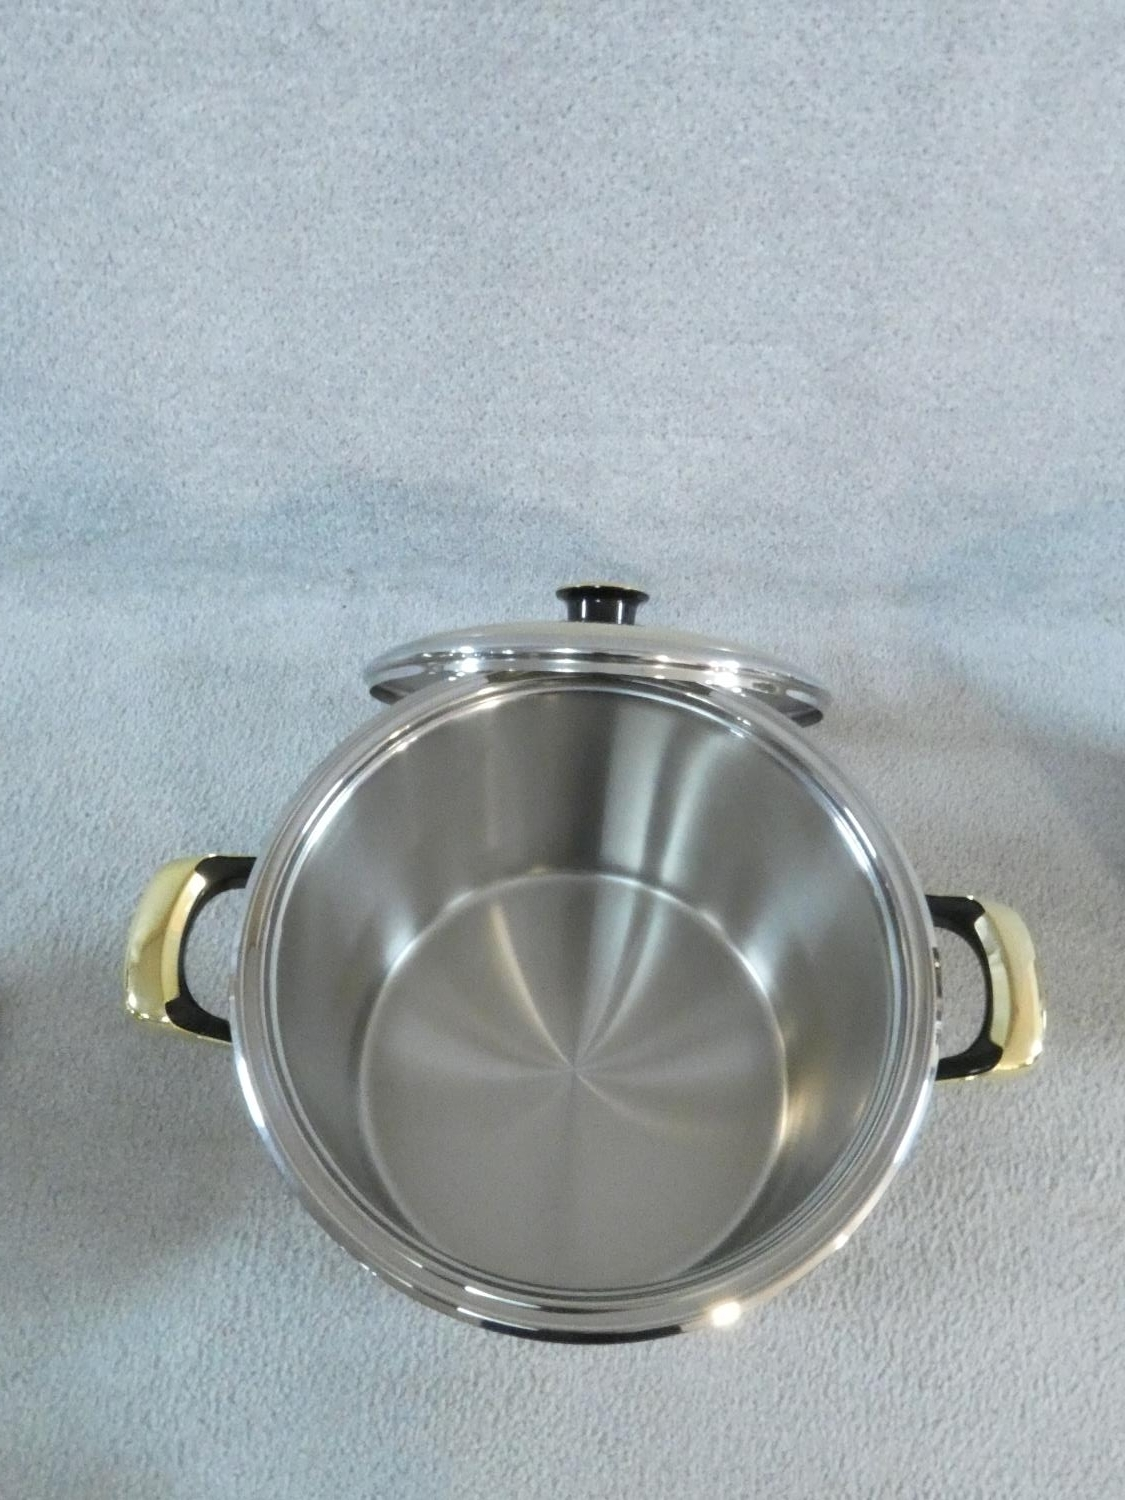 A set of boxed stainless steel as new Cameo Royale pans and cookware with 24k gold plated - Image 5 of 22